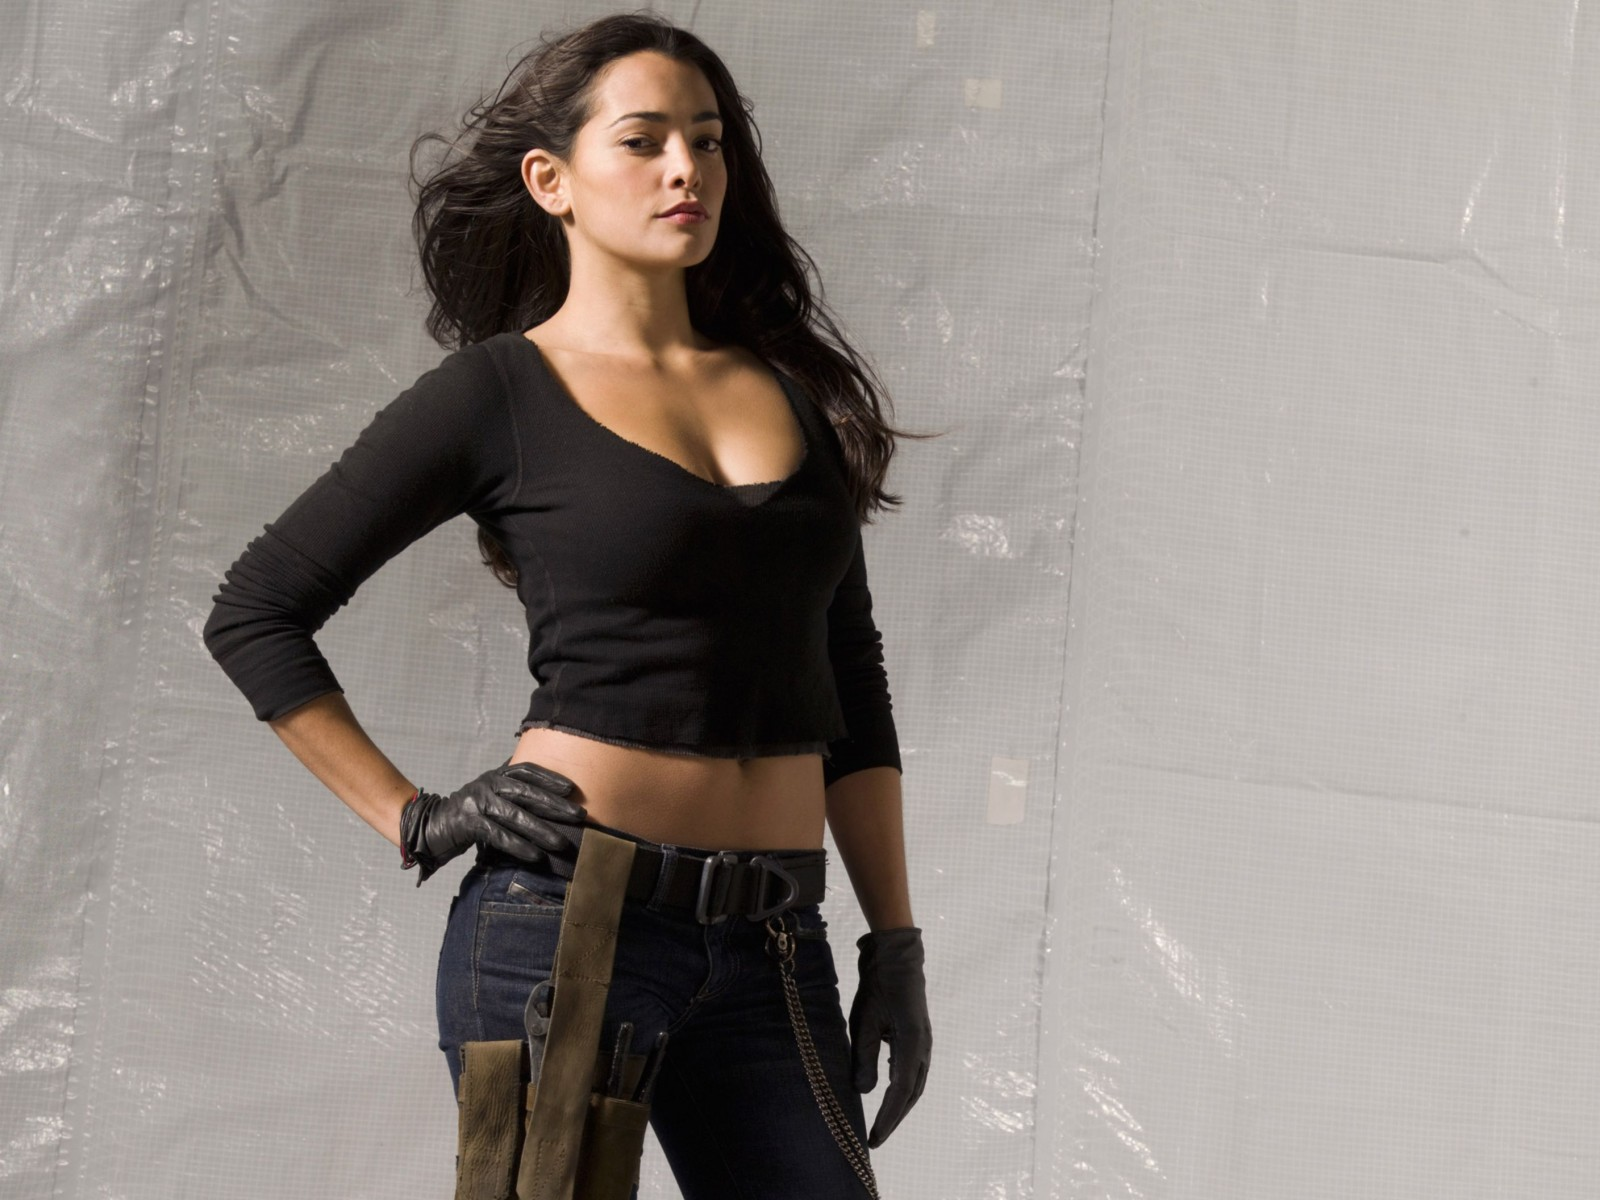 Natalie Martinez 10 Normal Wallpaper